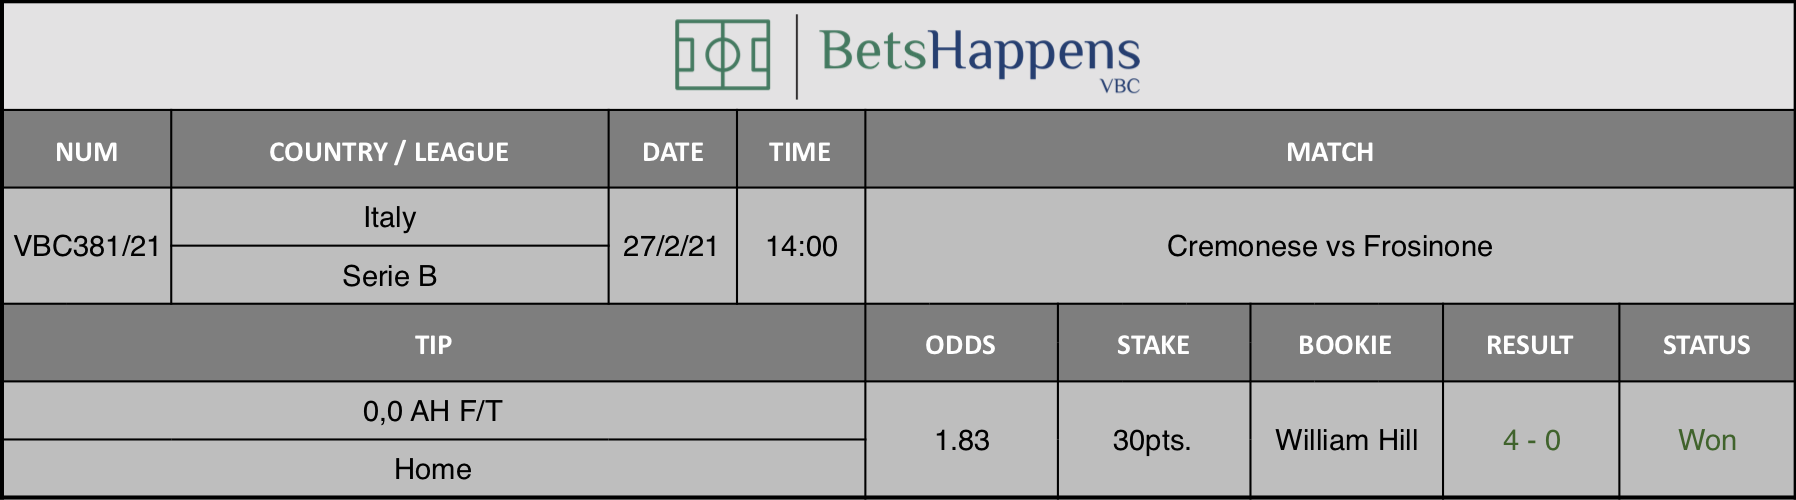 Results of our tip for the Cremonese vs Frosinone Itaugua match where 0,0 AH F/T Home is recommended.